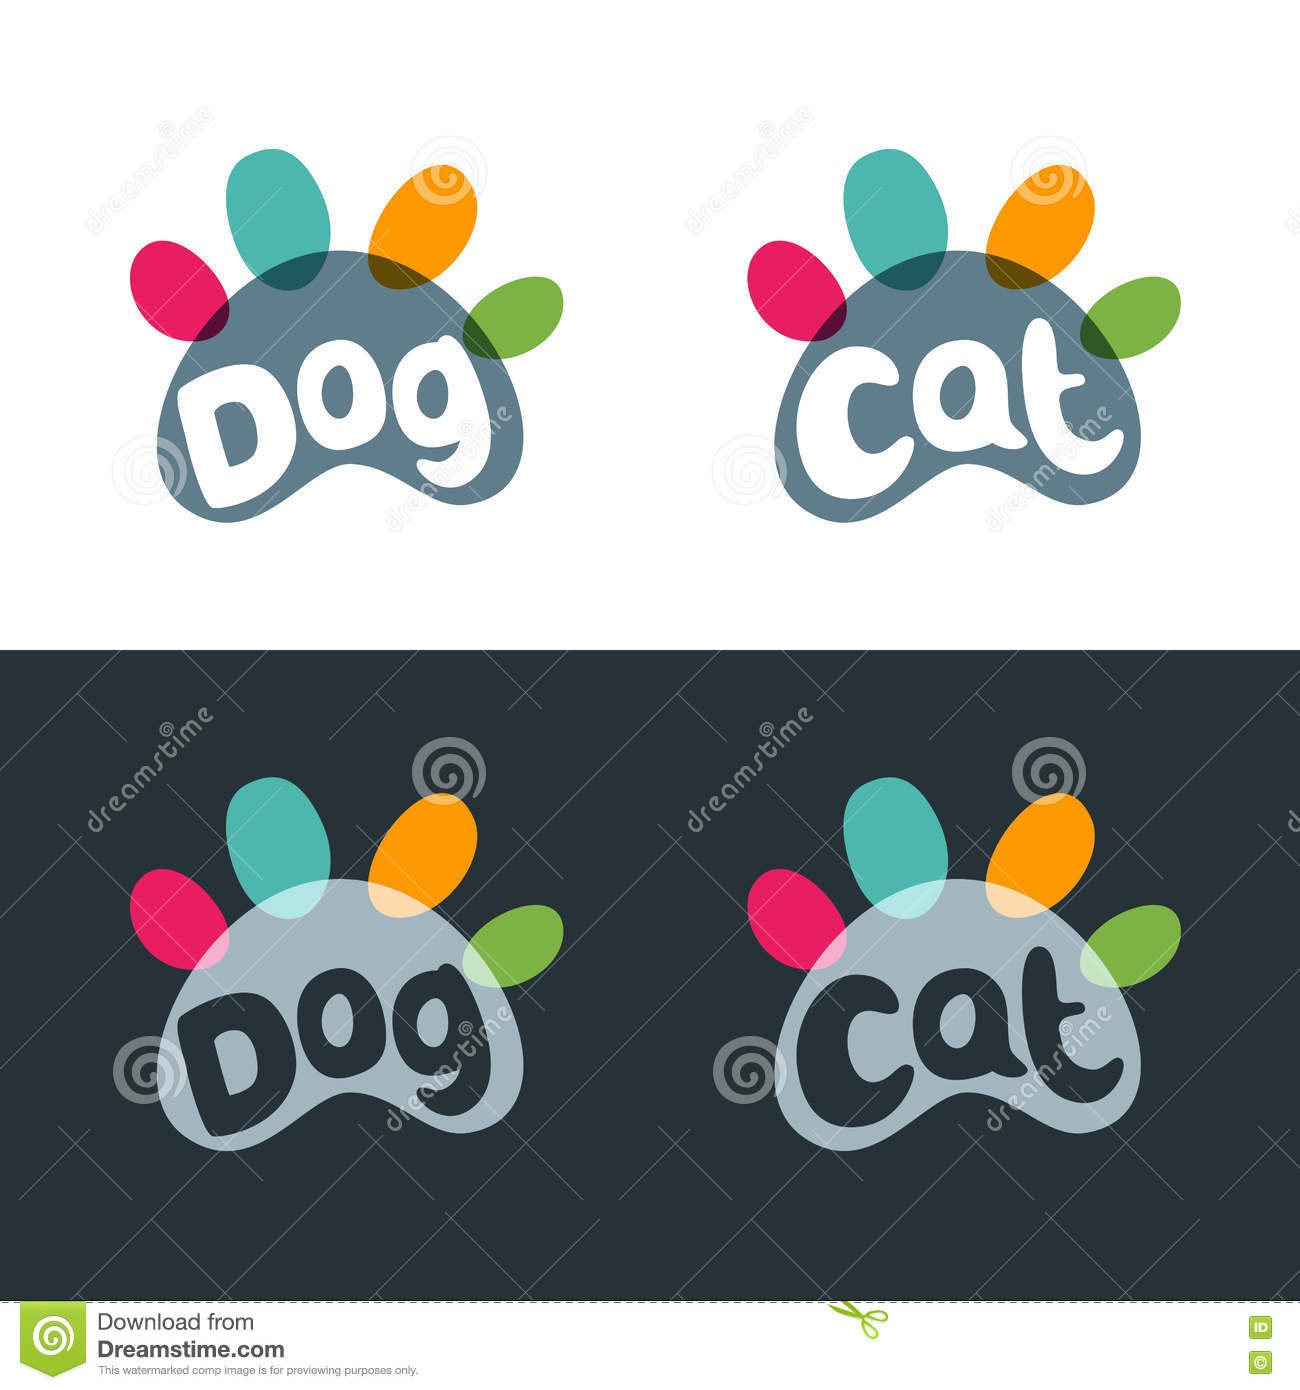 Emblem Pet Services August – Present 8 years 4 months As a pet owner I understand that it can be difficult when you want to go on holiday without your pets or away for any length of essay-fast-help.gq: Owner, Emblem Pet Services.